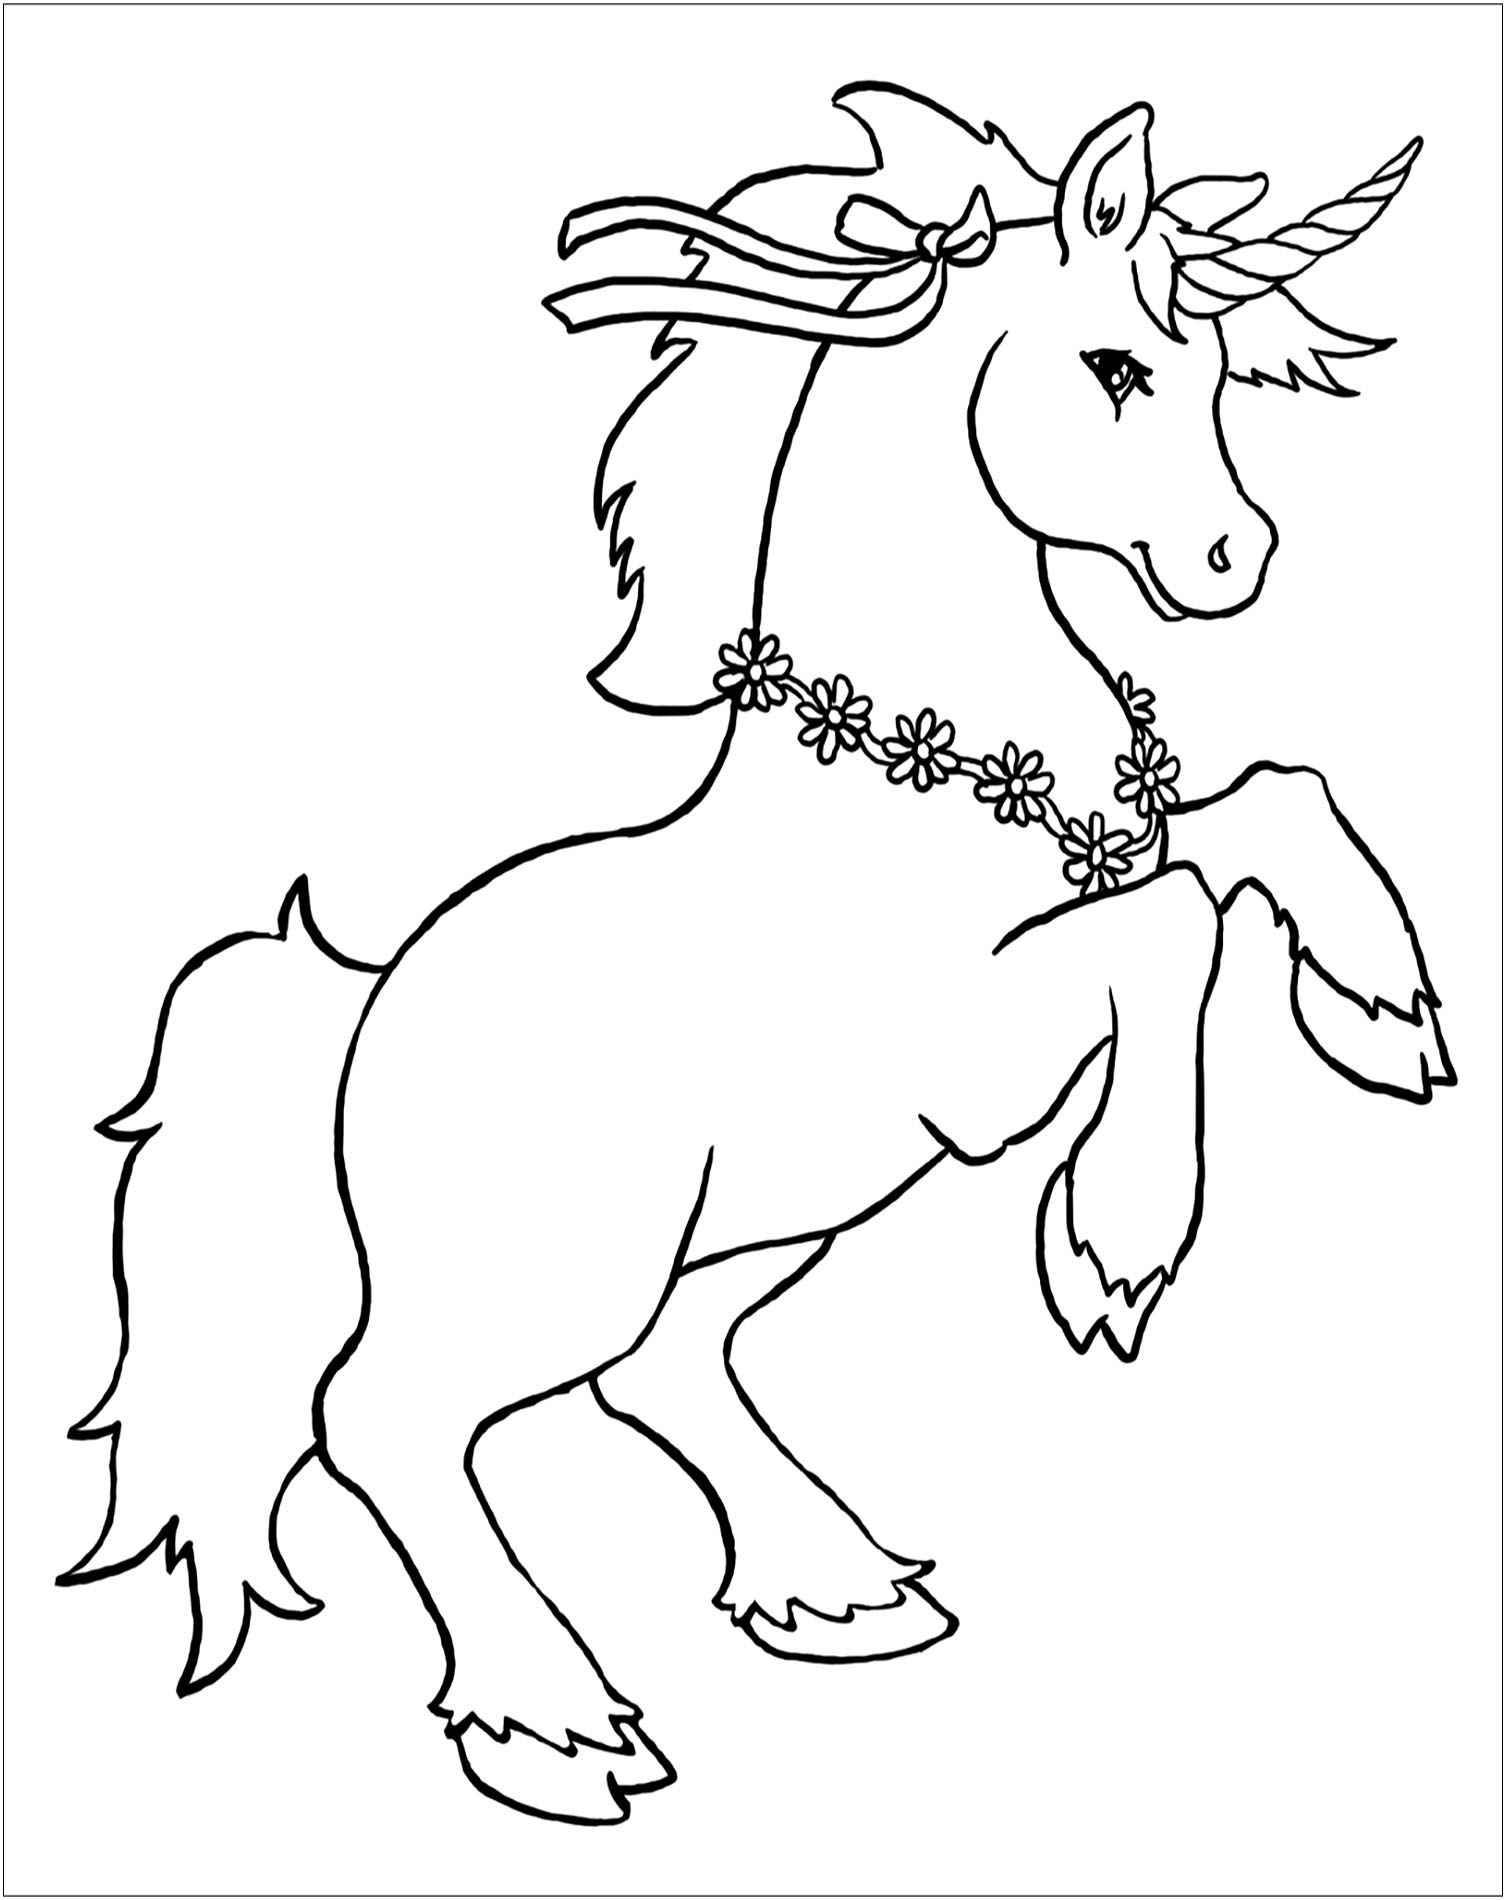 Despicable Me Coloring Pages Despicable Unicorn Coloring Pages At ... | 1900x1506